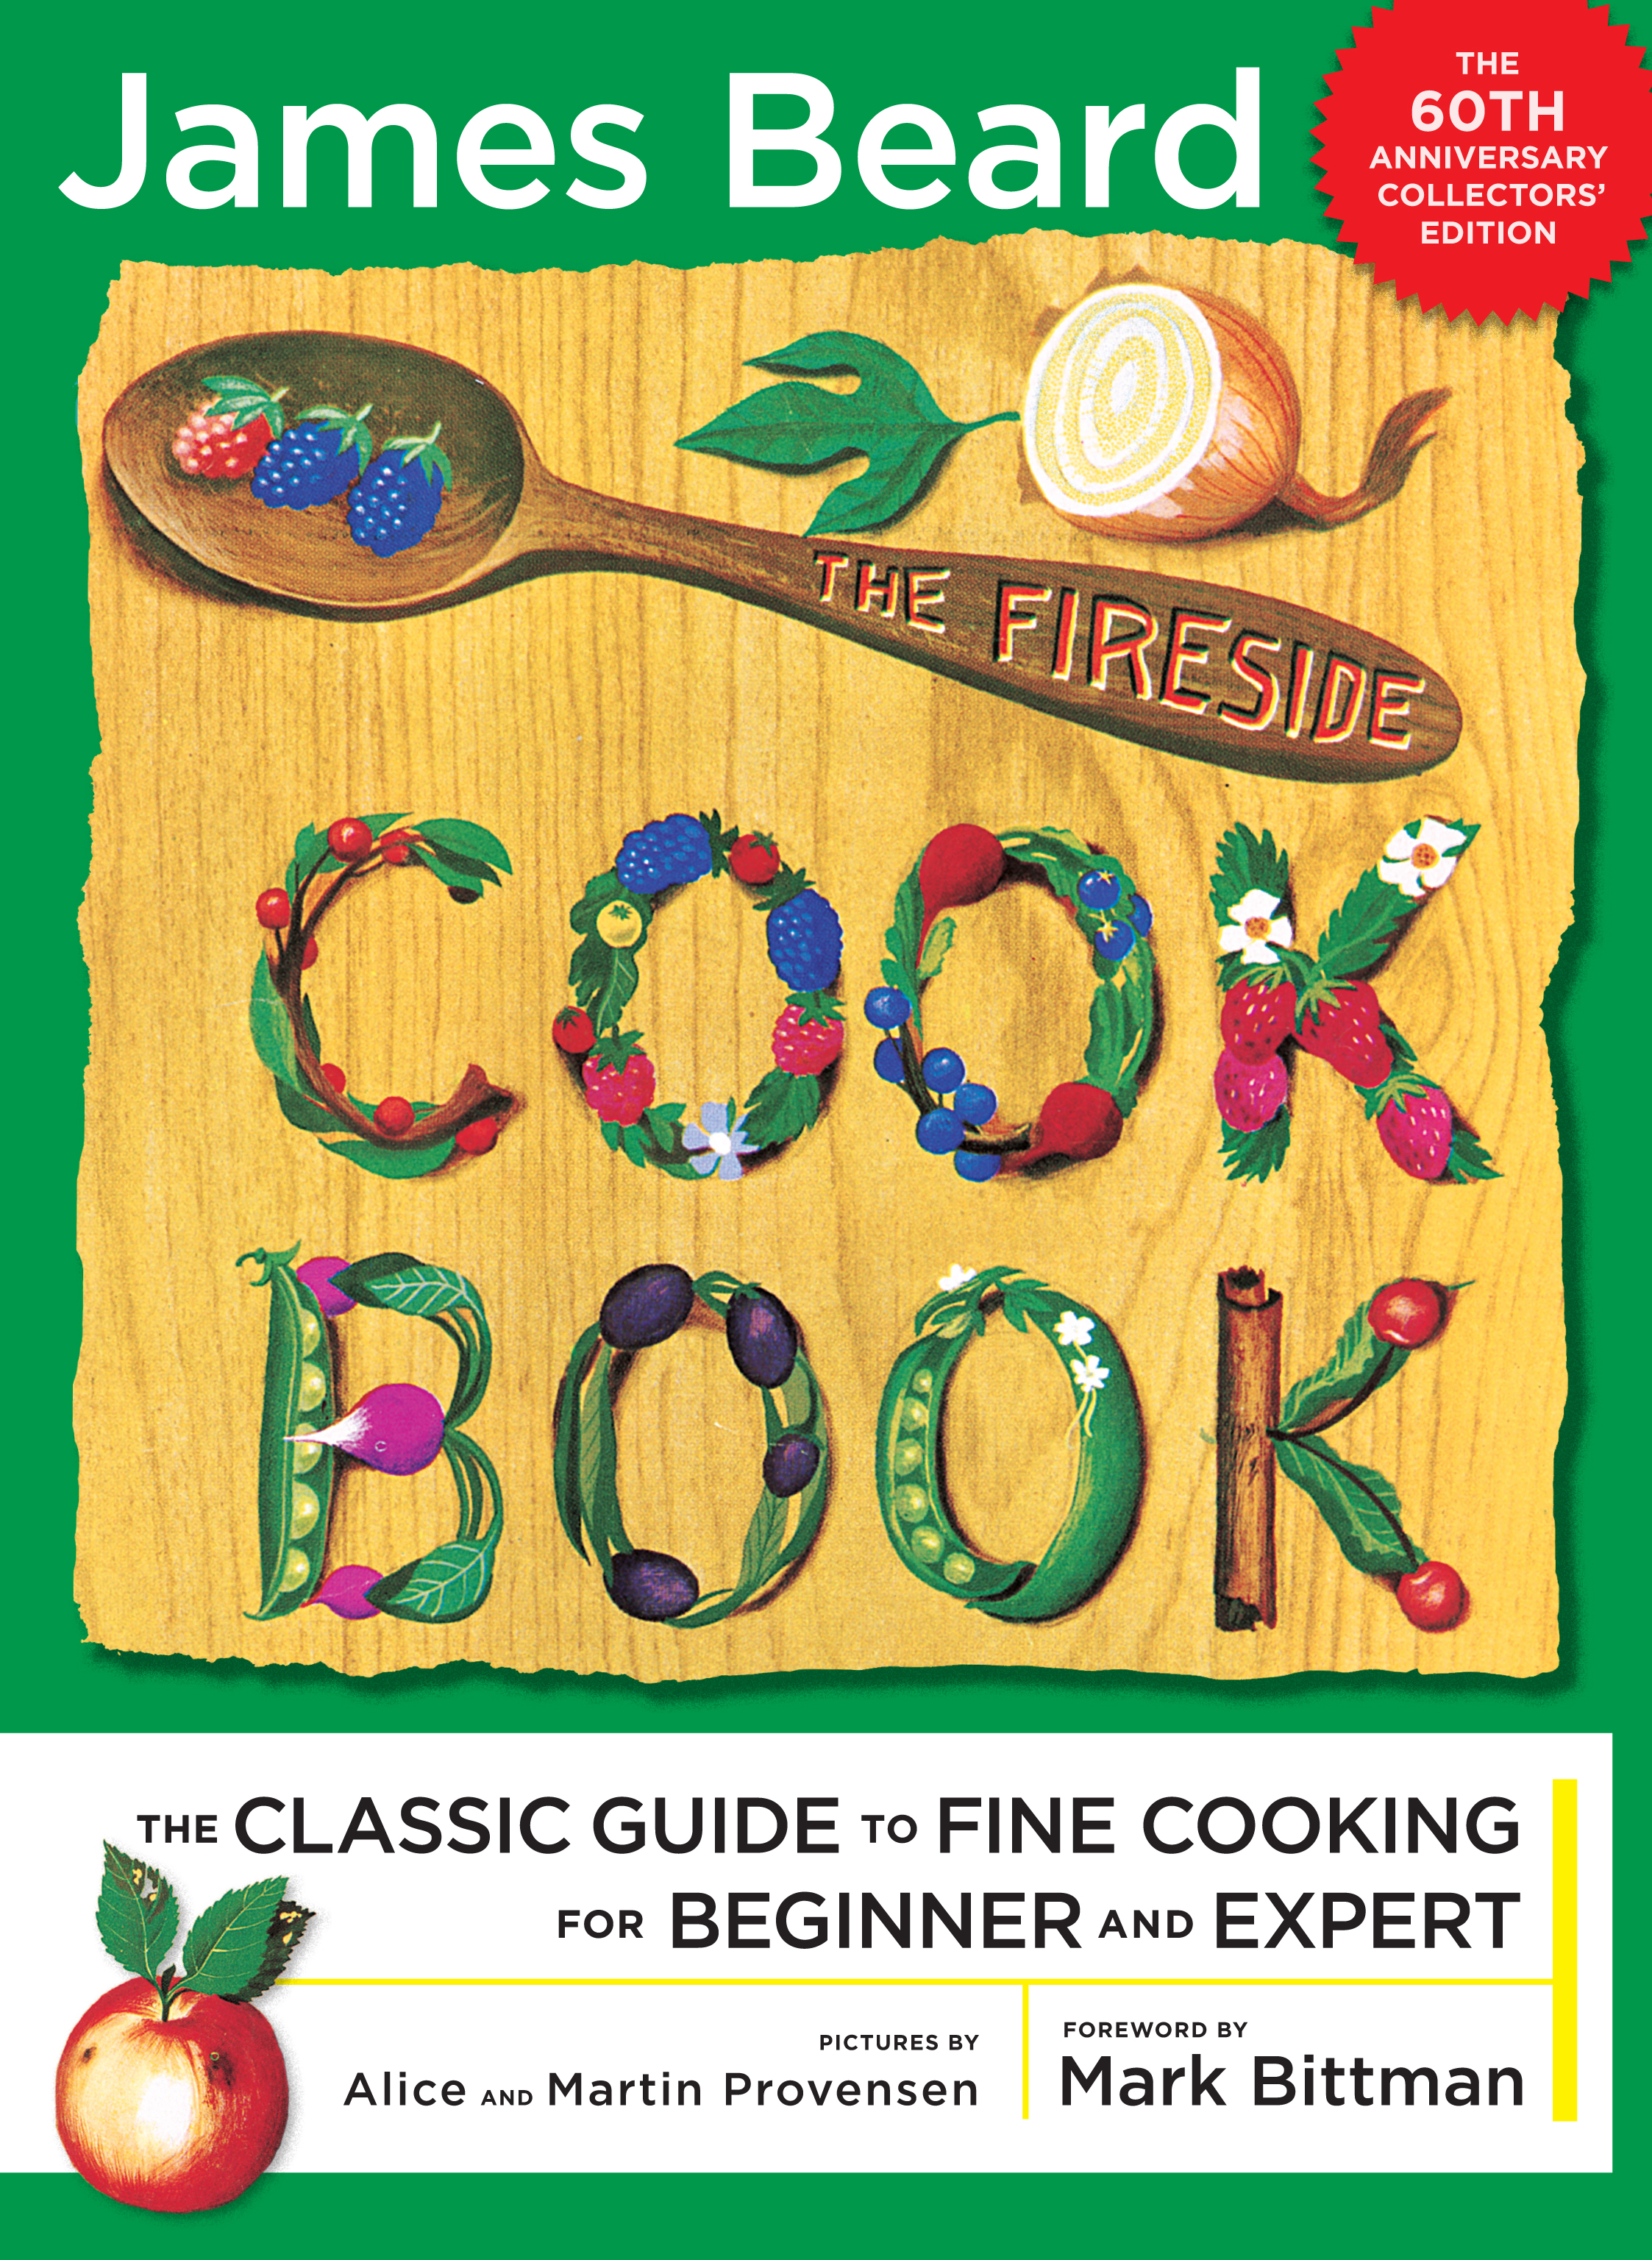 Mark bittman official publisher page simon schuster canada book cover image jpg the fireside cook book forumfinder Image collections